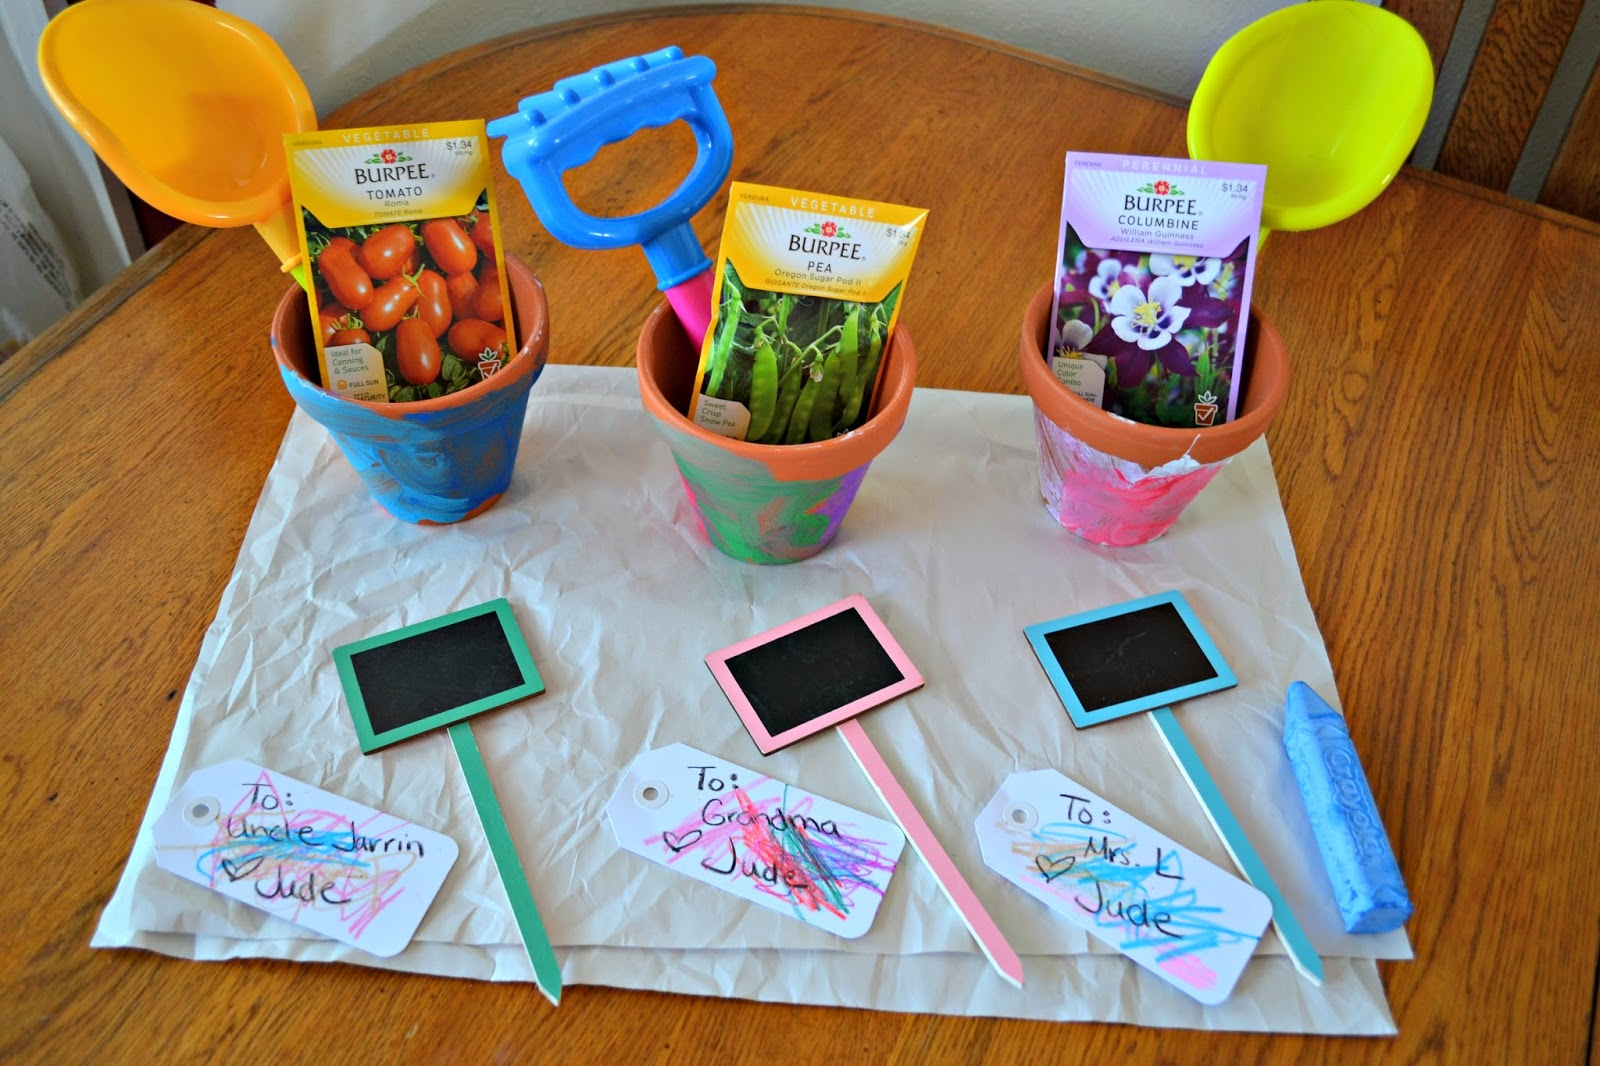 Gardening Gift Basket Ideas this 60 garden hose basket is filled with gardening goodies both for the garden and Creating A Colorful Garden Gift Basket Using Crayola Crayons And Sidewalk Chalk Colorfulcreations Shop Building Our Story